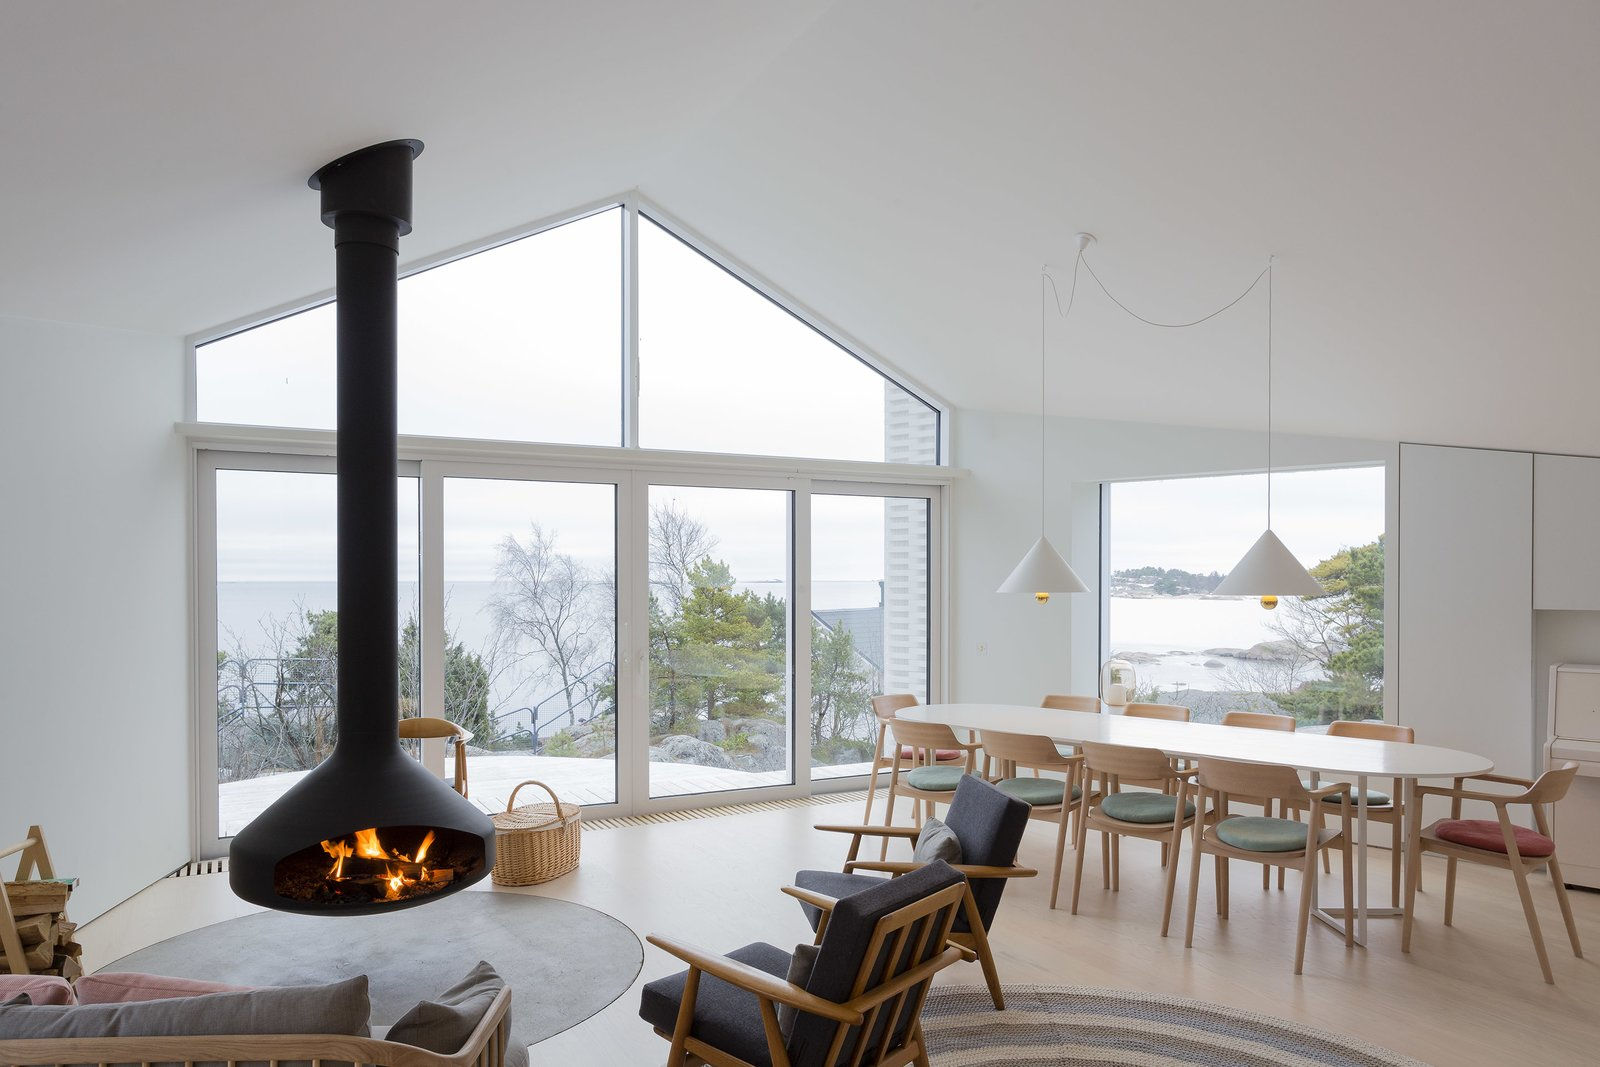 Living Room, Light Hardwood Floor, Chair, Hanging Fireplace, Pendant Lighting, and Sofa  Photo 4 of 12 in A Modern Finnish Villa That Grows Out of a Seaside Cliff